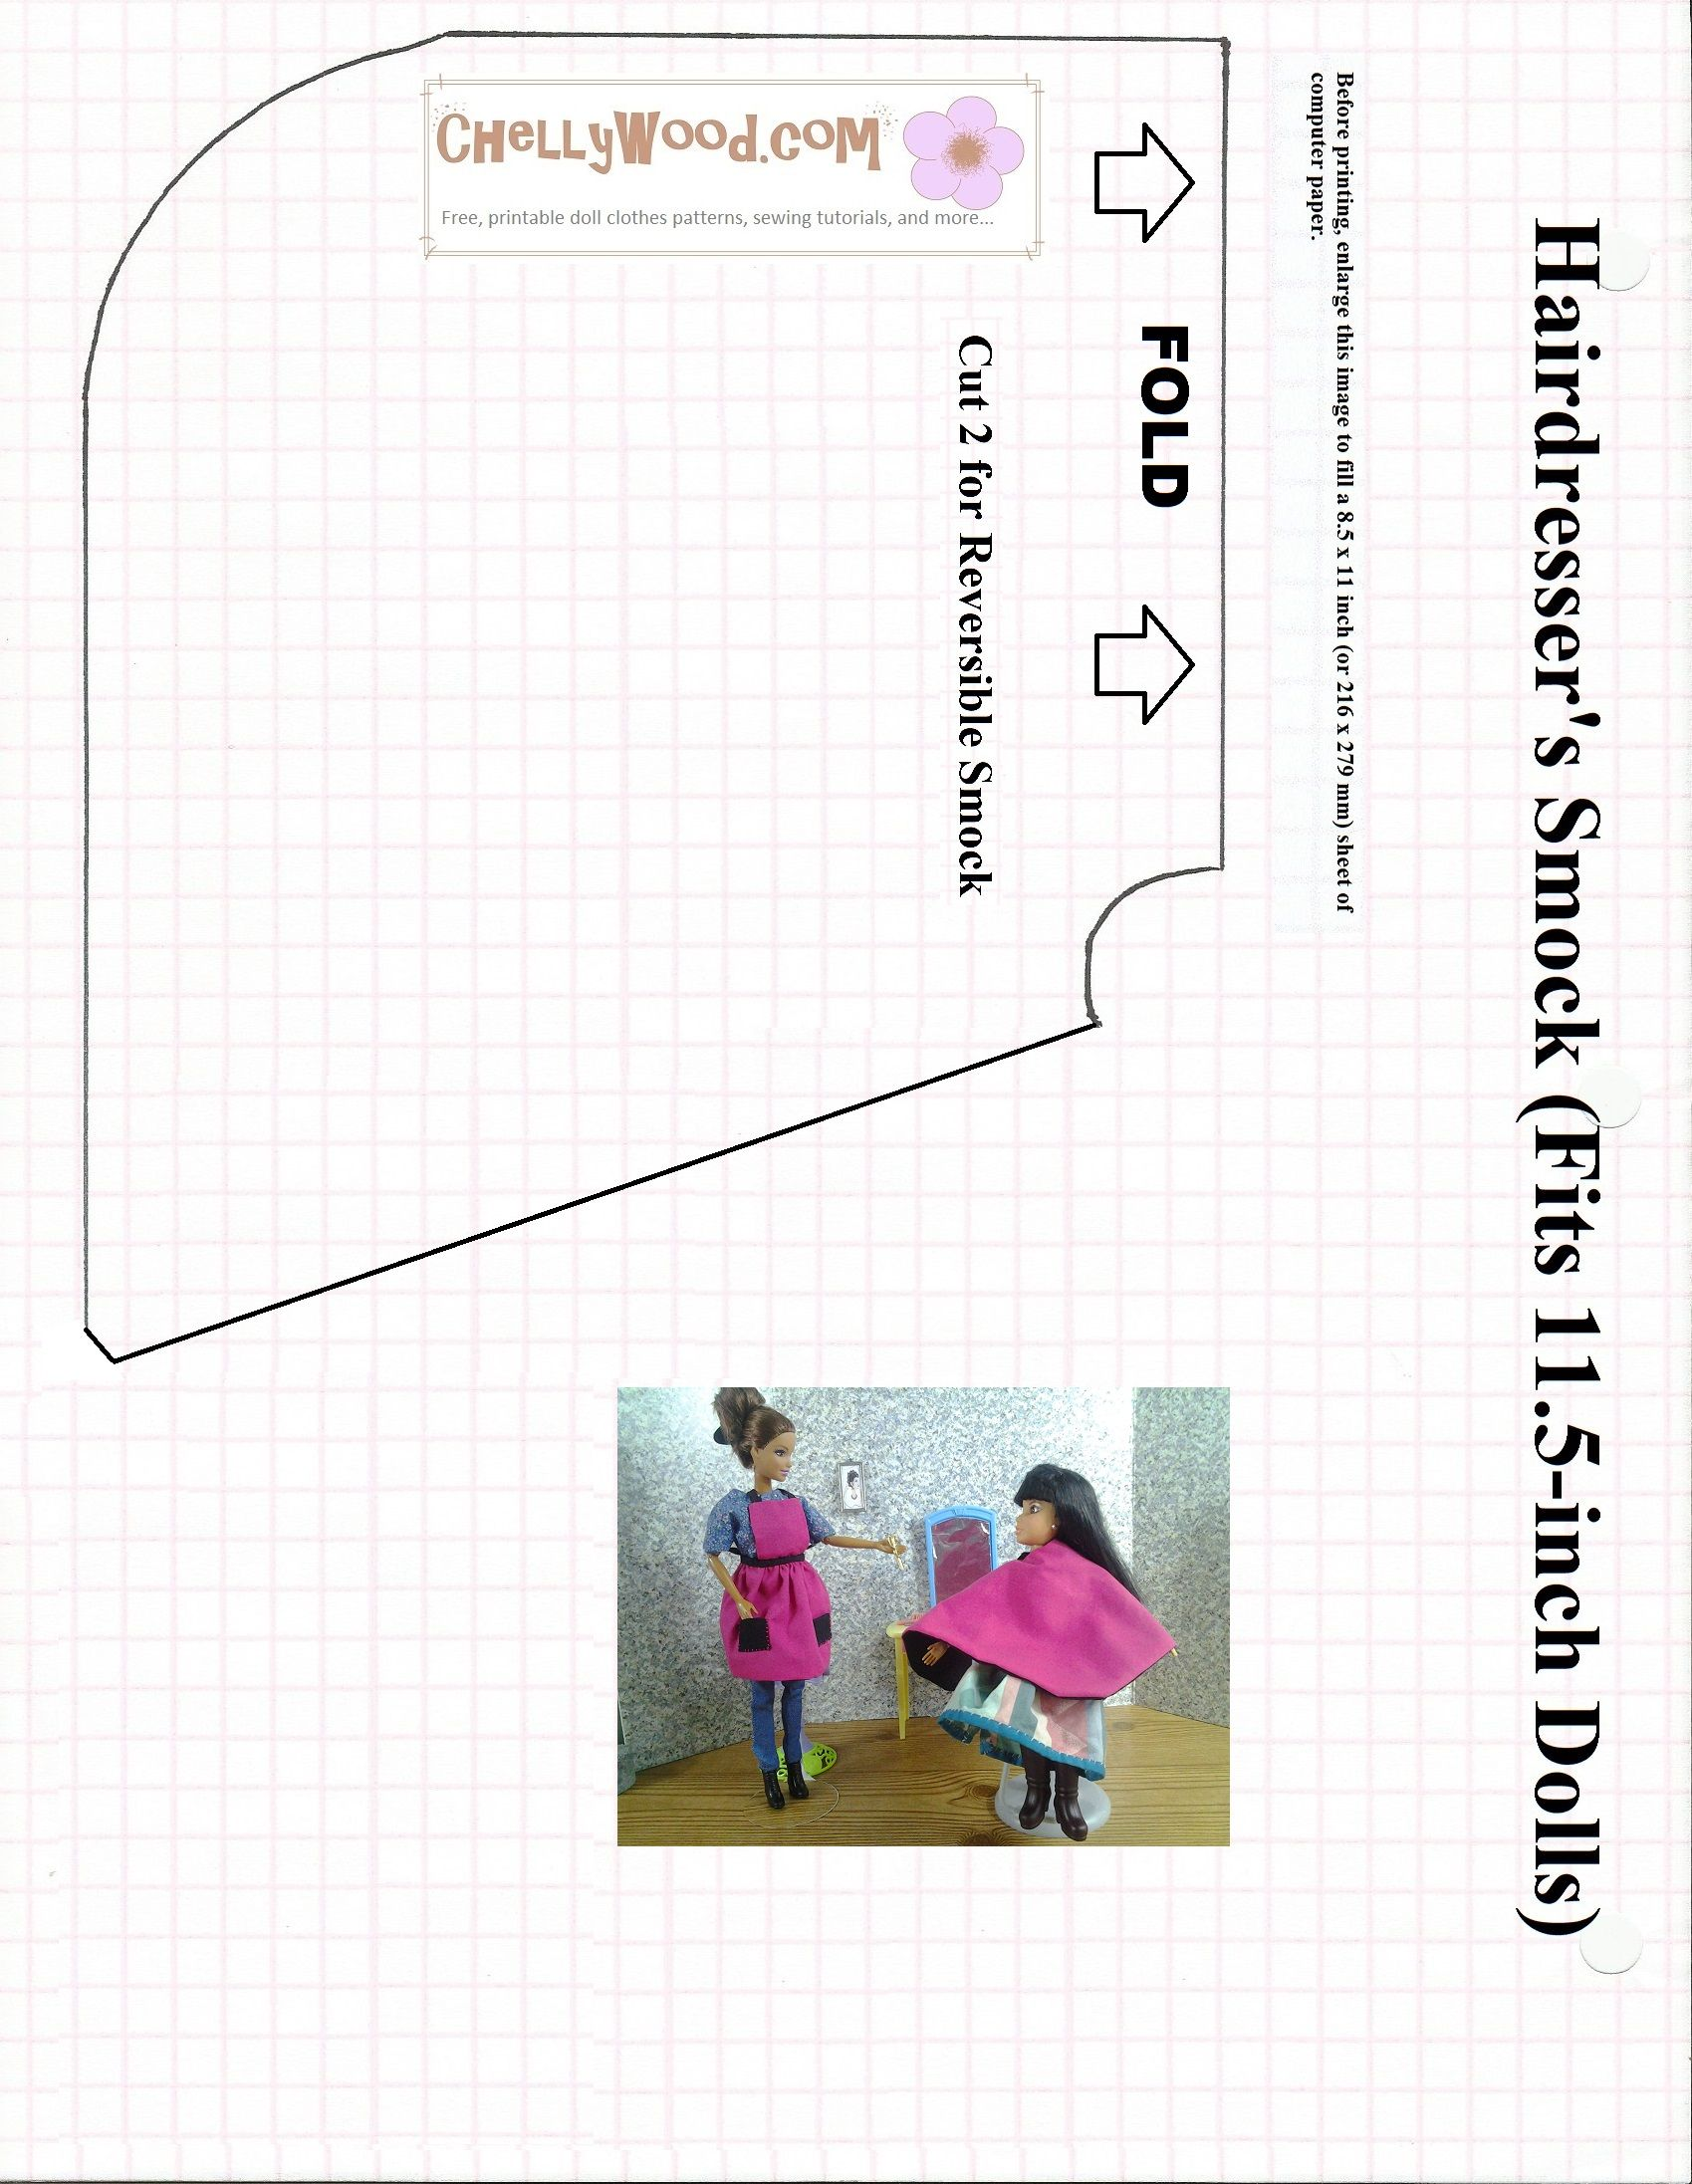 Chellywood is the best website for free sewing patterns for chellywood is the best website for free sewing patterns for all kinds of dolls jeuxipadfo Gallery